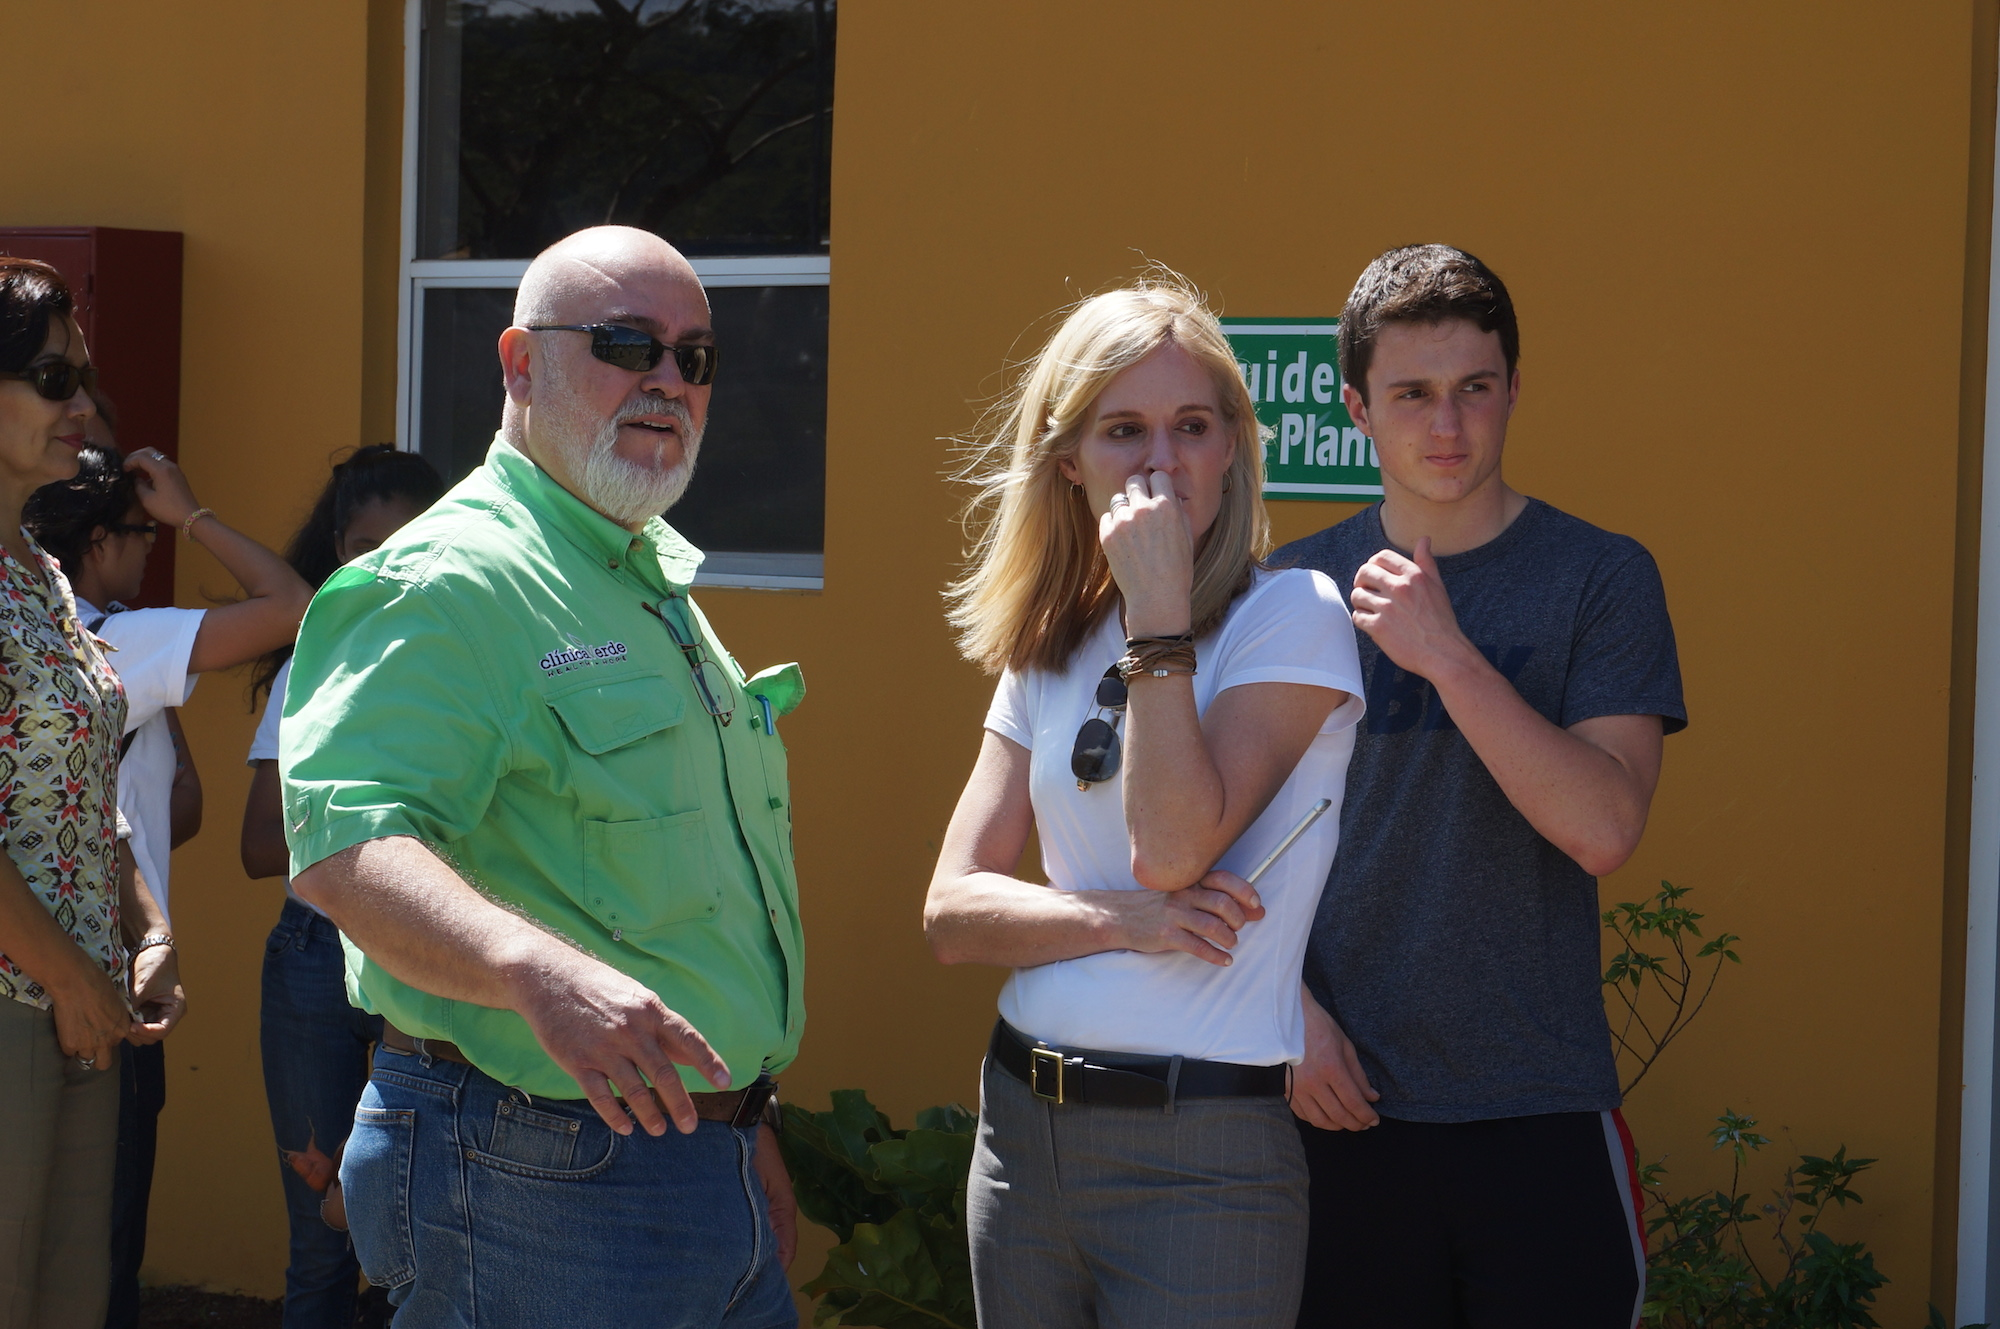 Susan Dix Lyons, d.school fellow and founder of Clinica Verde (center) stands alongside Clinica Verde general manager Rafael Morales (left).